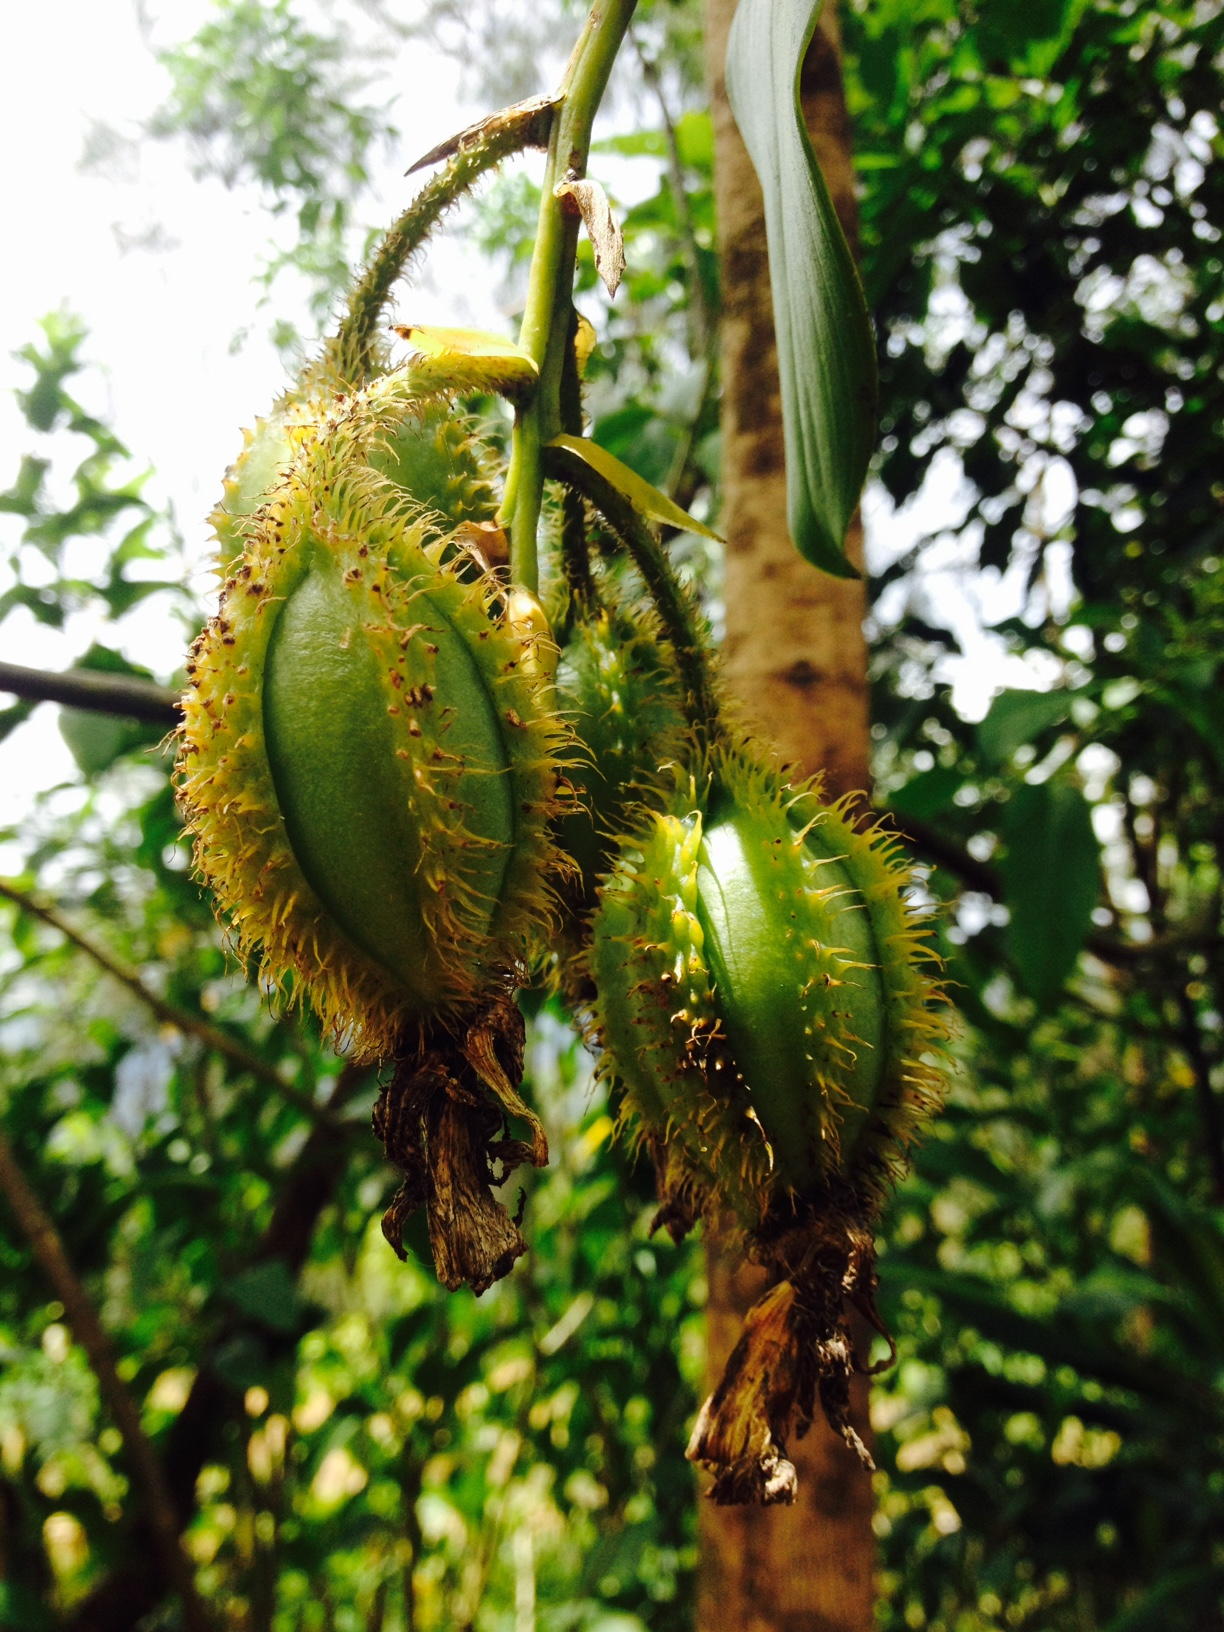 These pods grow off the sides of some orchids and are filled with pollen.